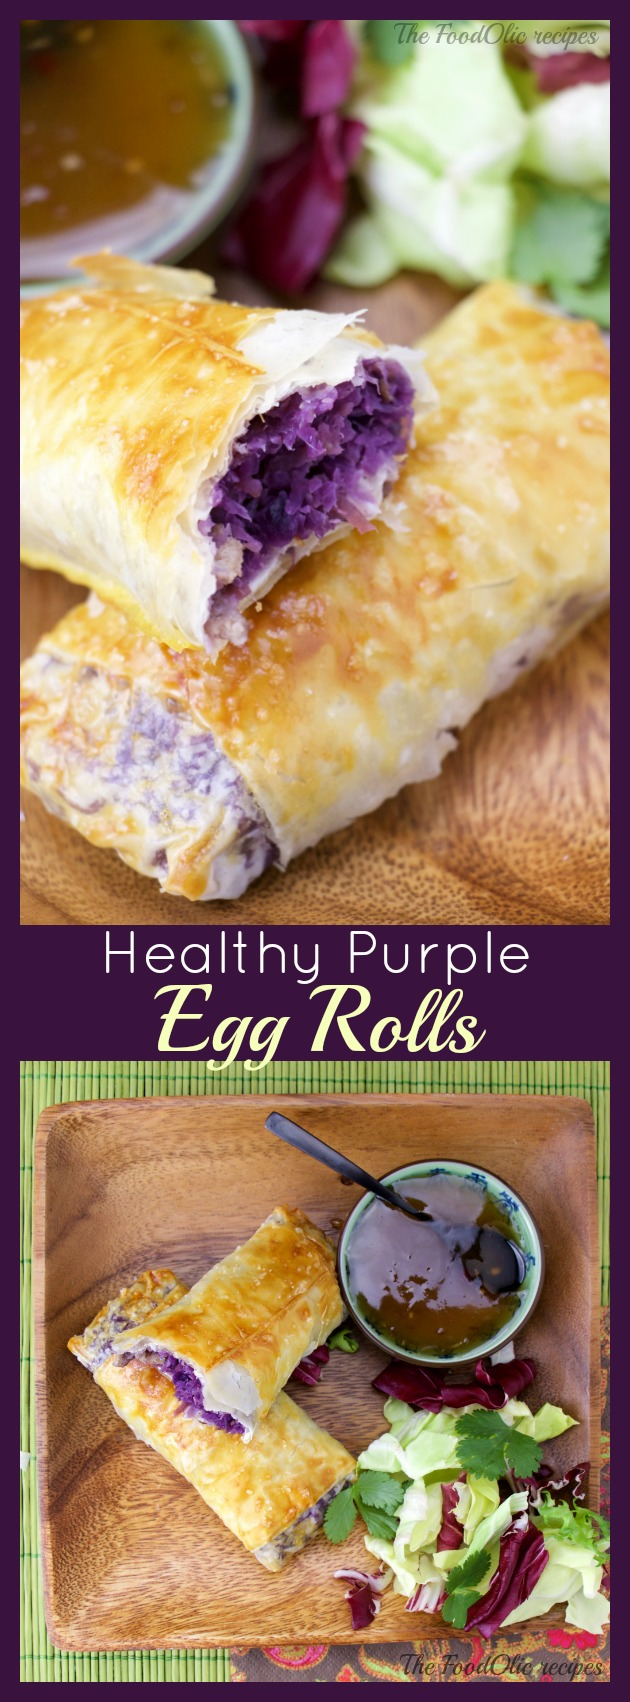 These purple cabbages Egg rolls flavored with pork, ginger and garlic are enveloped in a light crunchy phyllo. They are also baked instead of fried for a healthier version.  Accompanied with a plum sauce, these egg rolls are a kid's favorite.